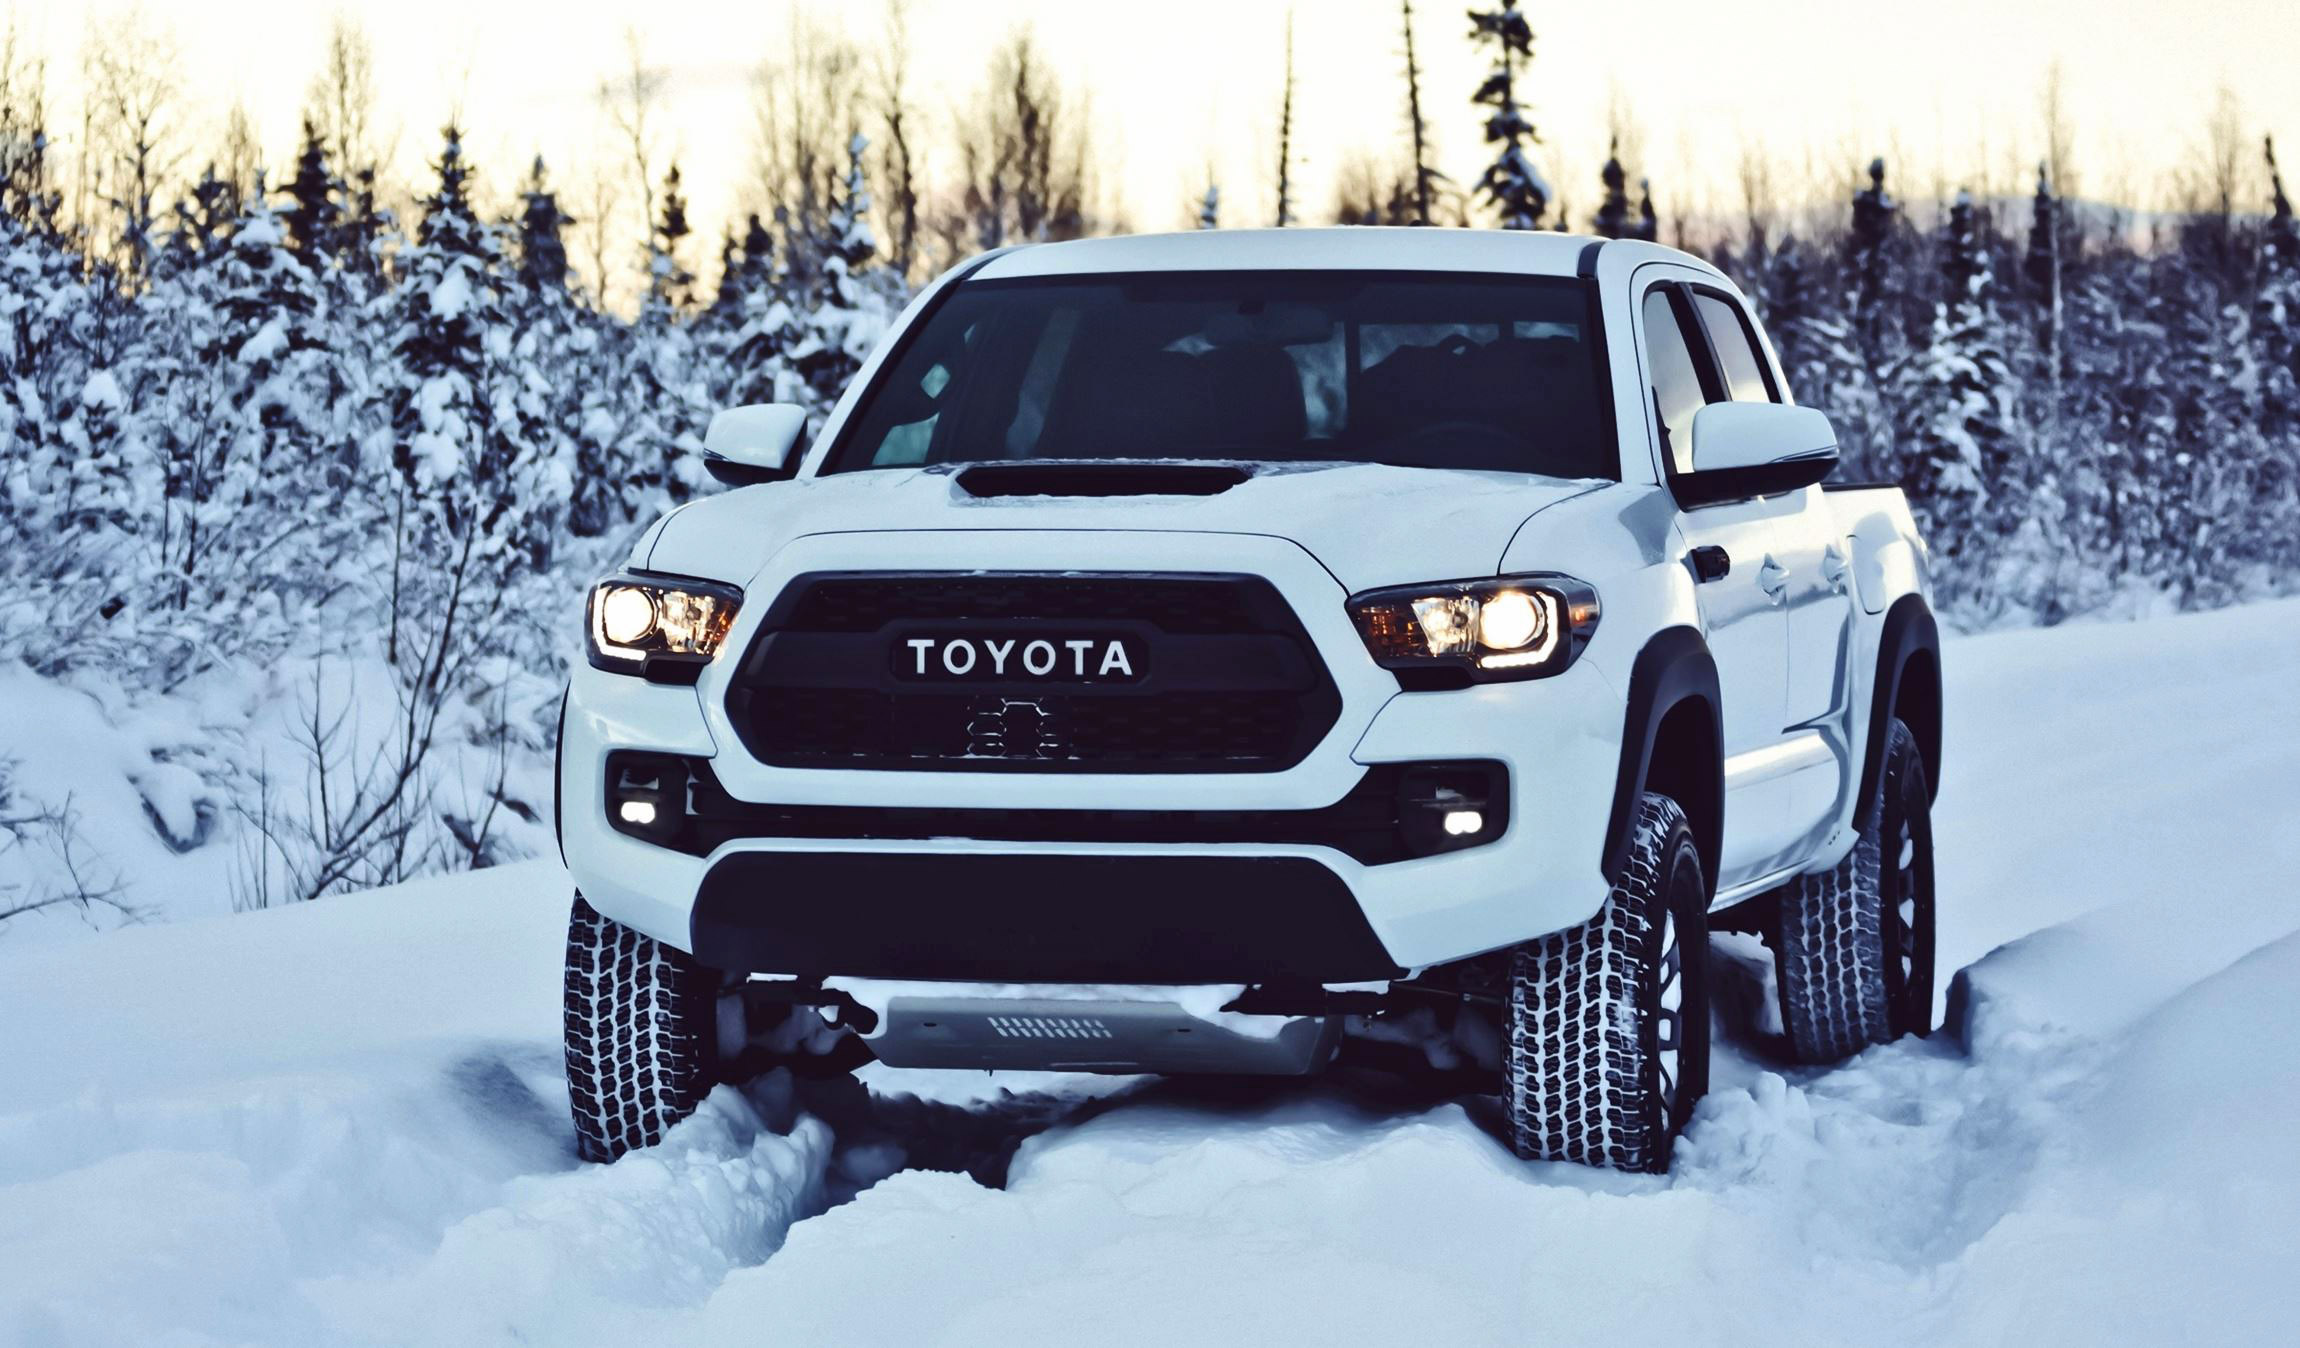 Toyota Tacoma Roof Rack >> 2017 Toyota Tacoma TRD Pro - Kevlar-Reinforced Tires, Rigid Industries LEDs and Black-Dipped ...